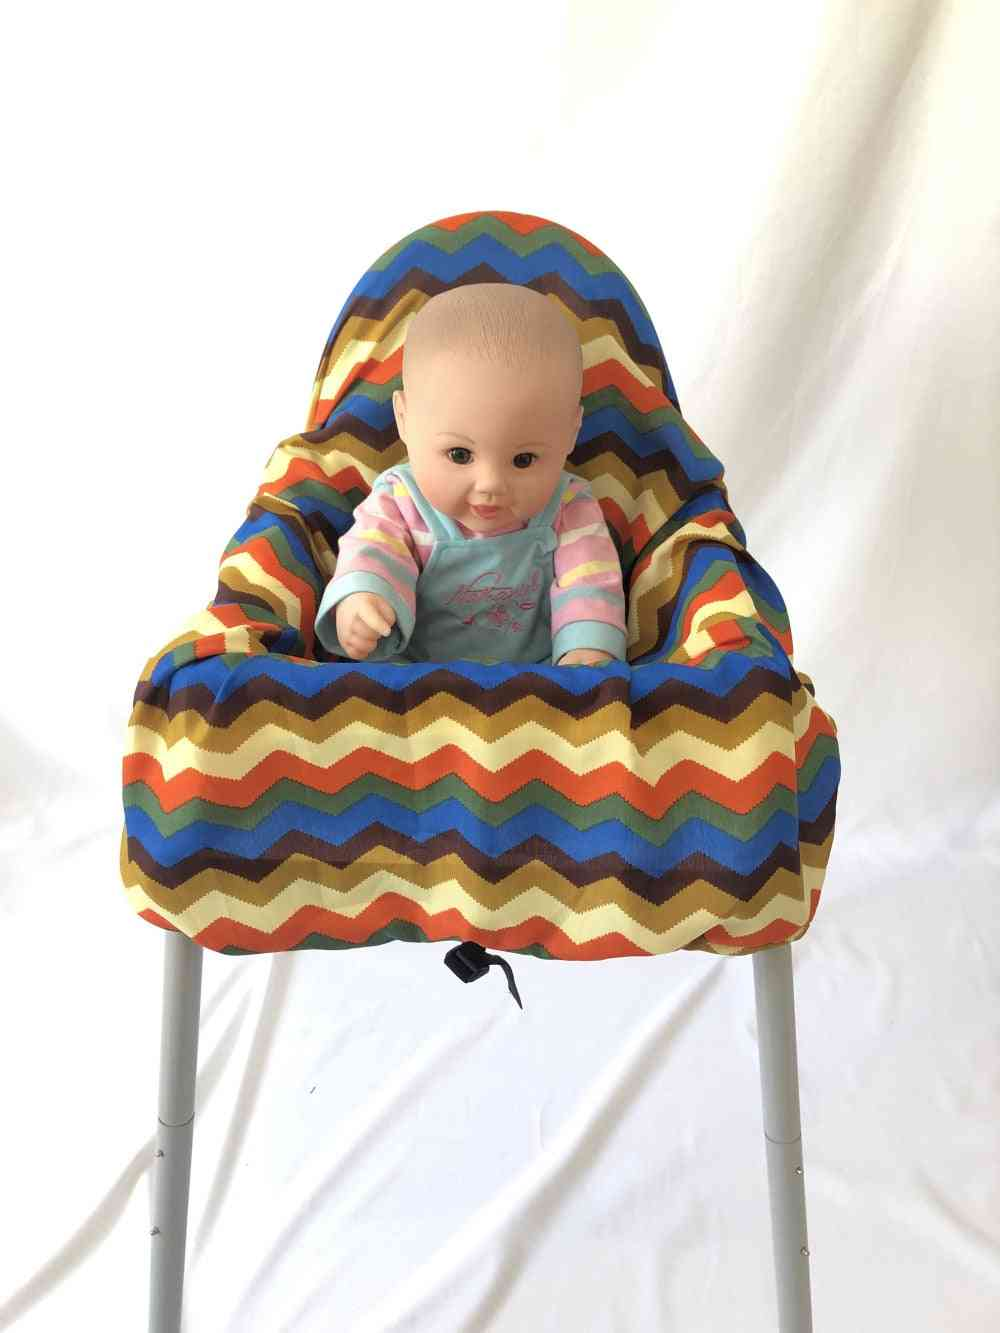 Infant Supermarket Grocery Shopping Cart Cover